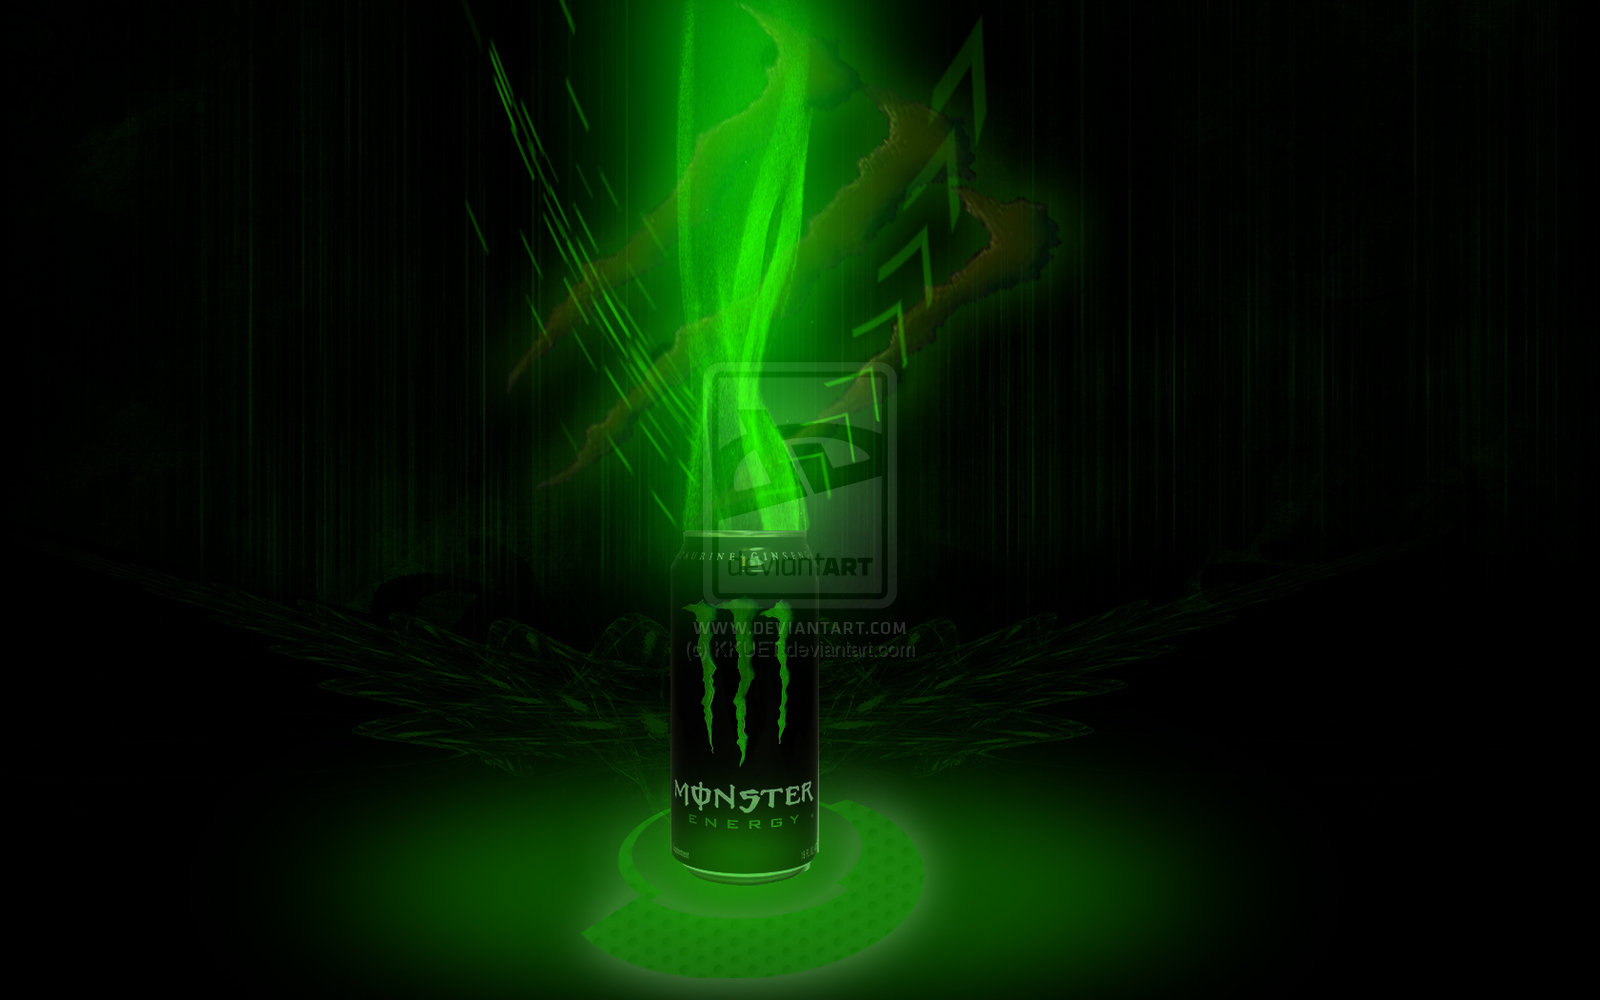 Pics Photos - Monster Energy Drink Logo Image Picture